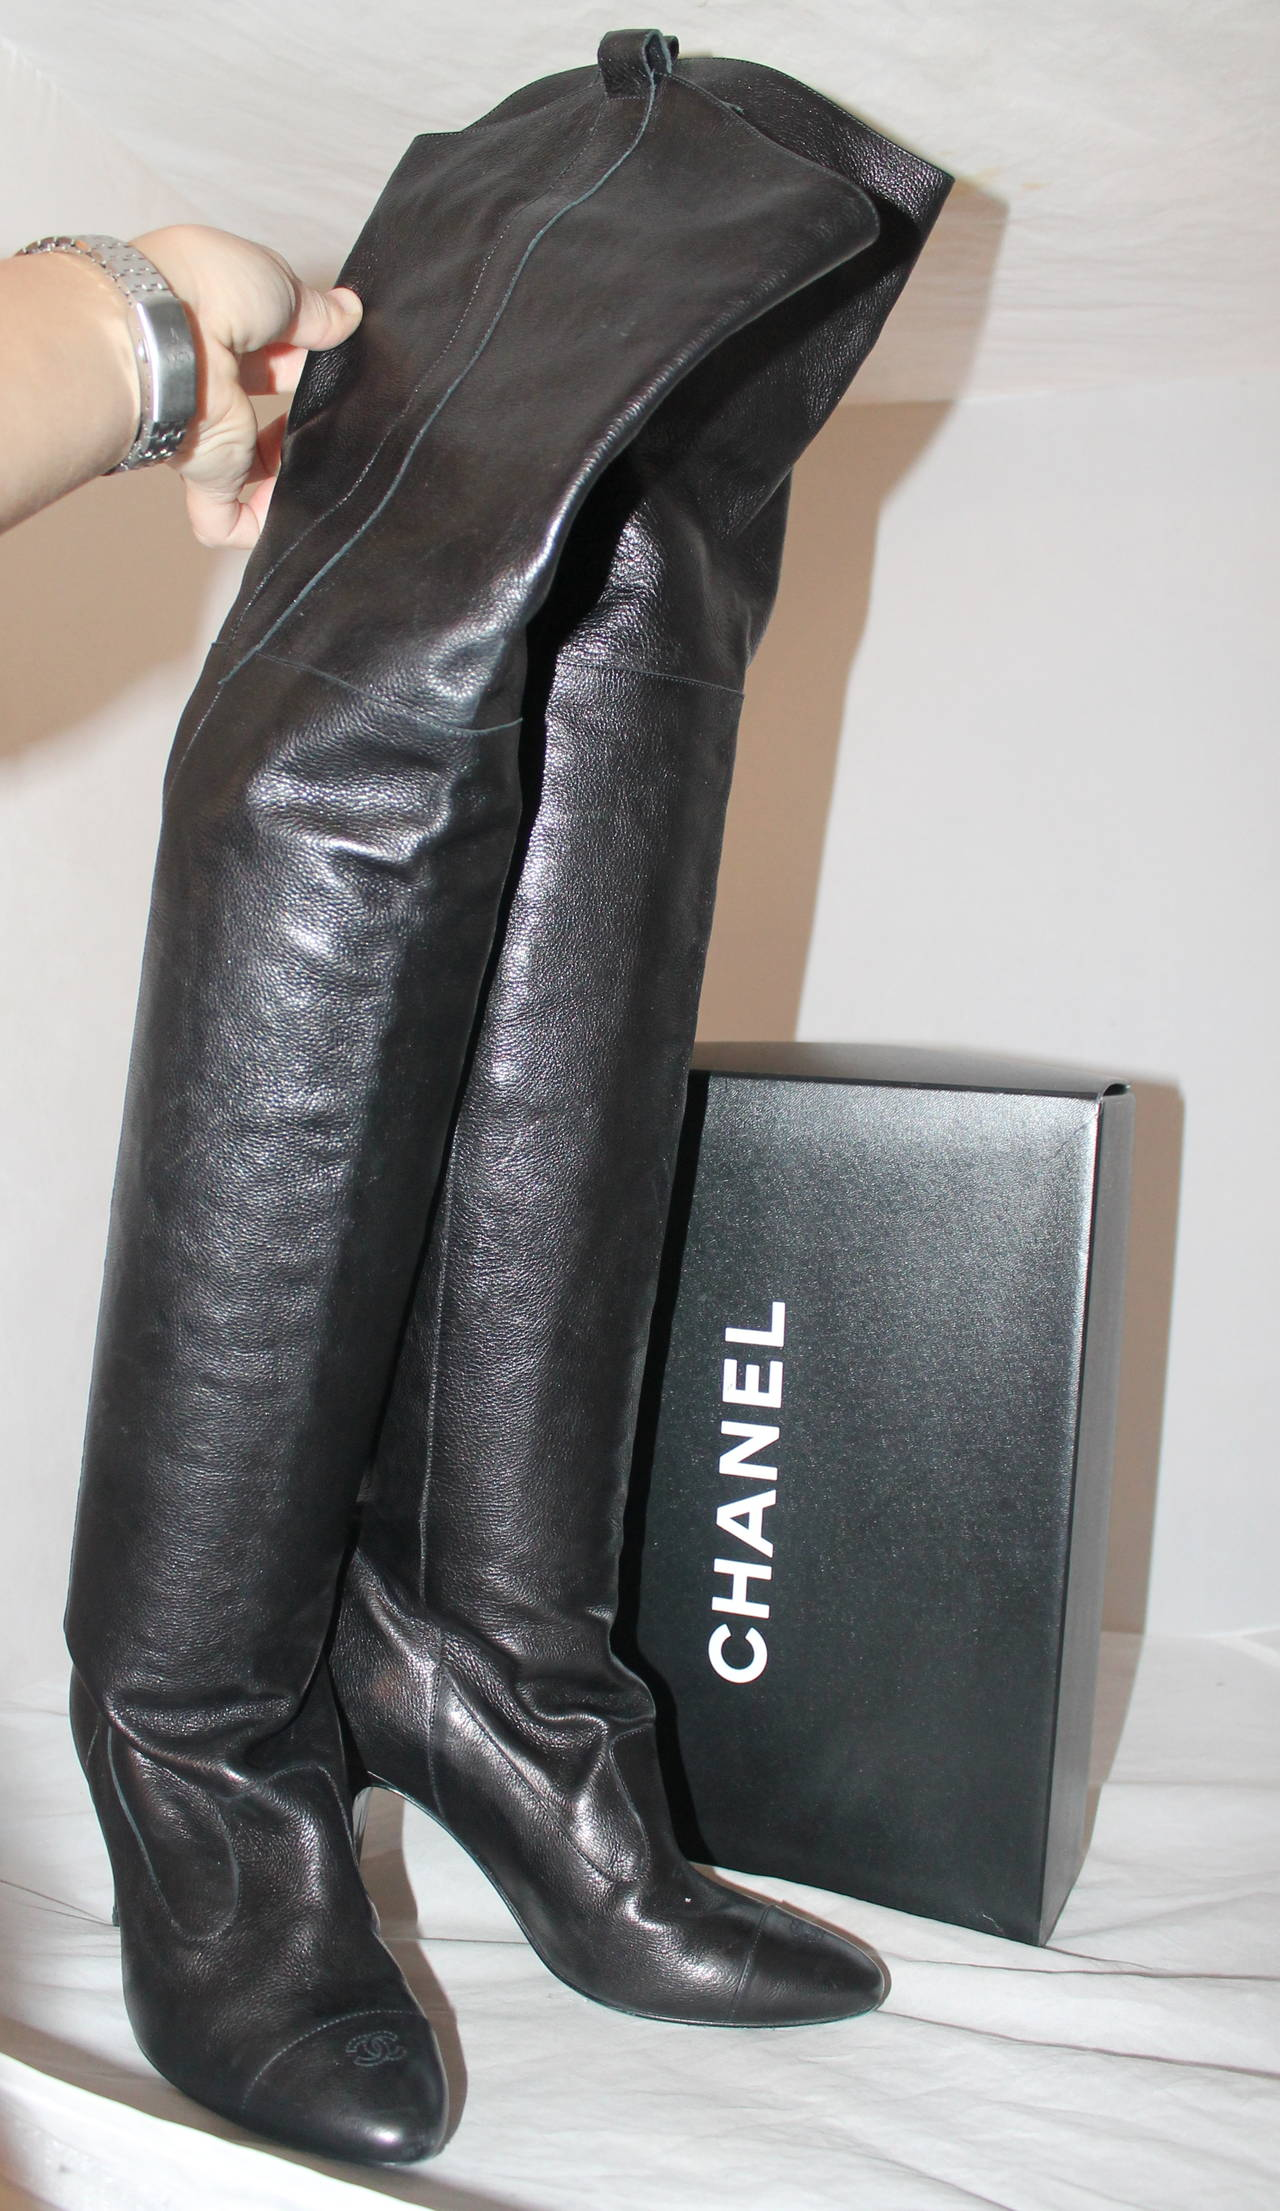 chanel chocolate brown thigh high boots 36 5 at 1stdibs